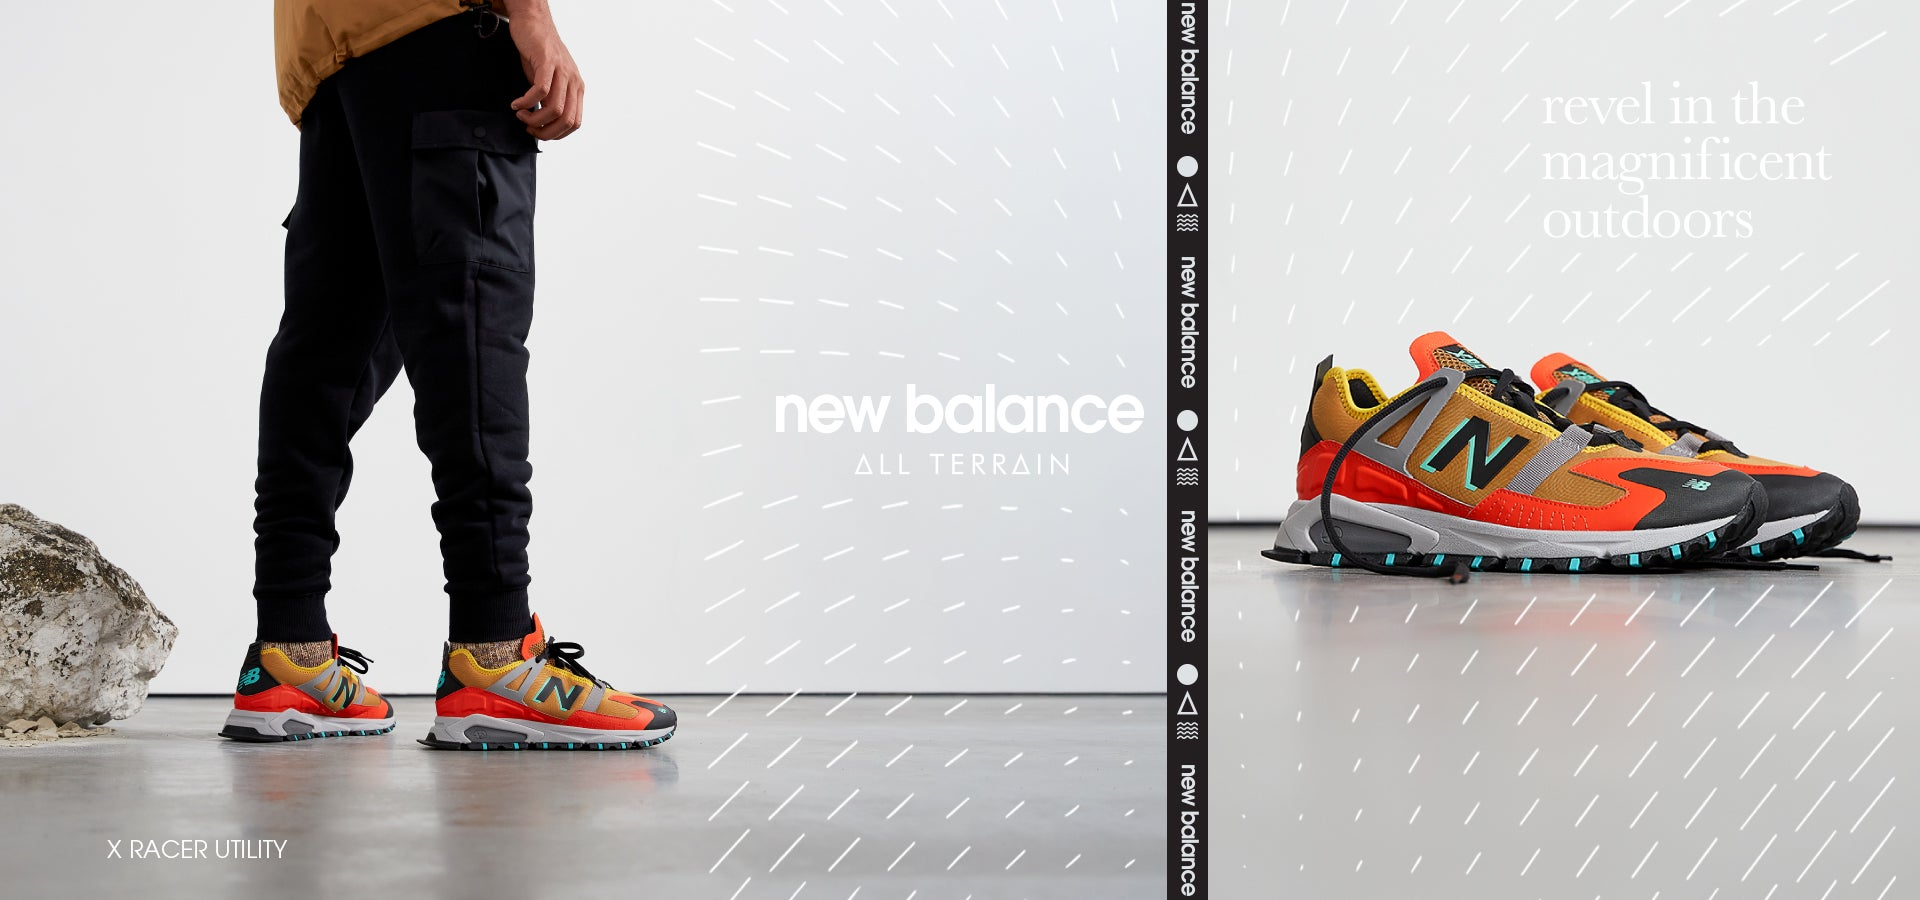 New Balance All Terrain. X RACER UTILITY